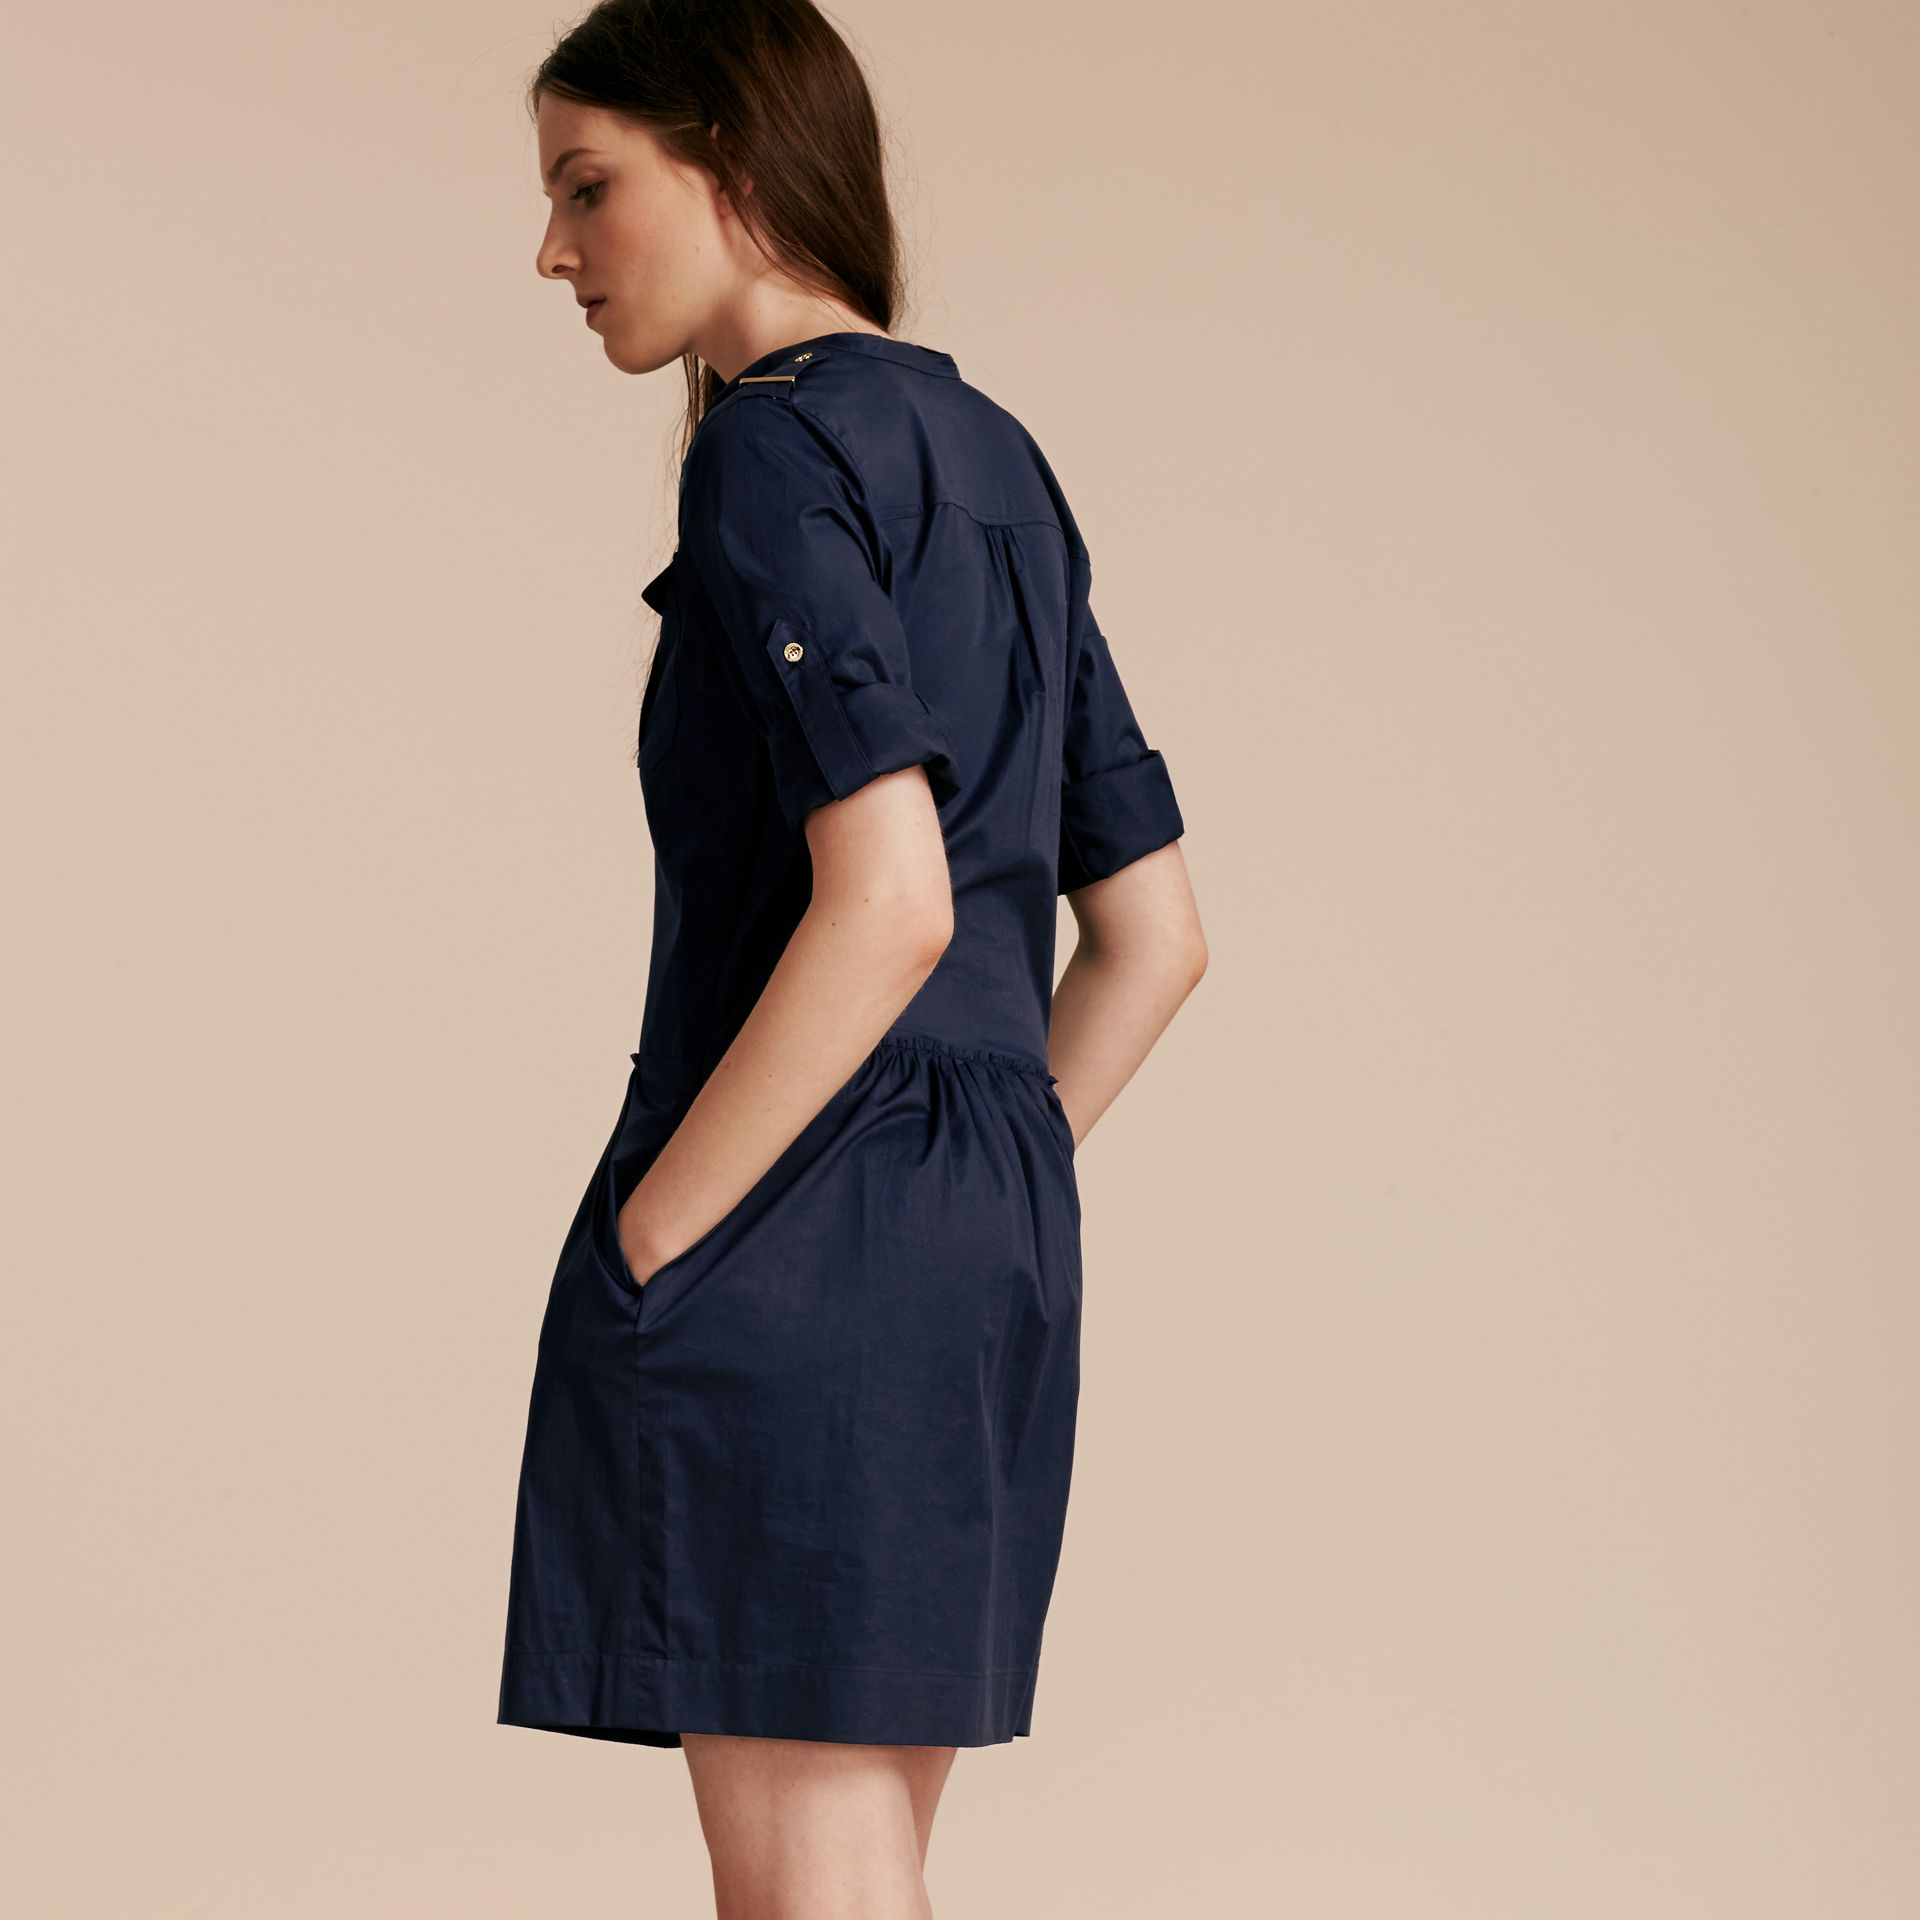 Dark pewter blue Military-inspired Cotton Blend Shirt Dress Dark Pewter Blue - gallery image 3